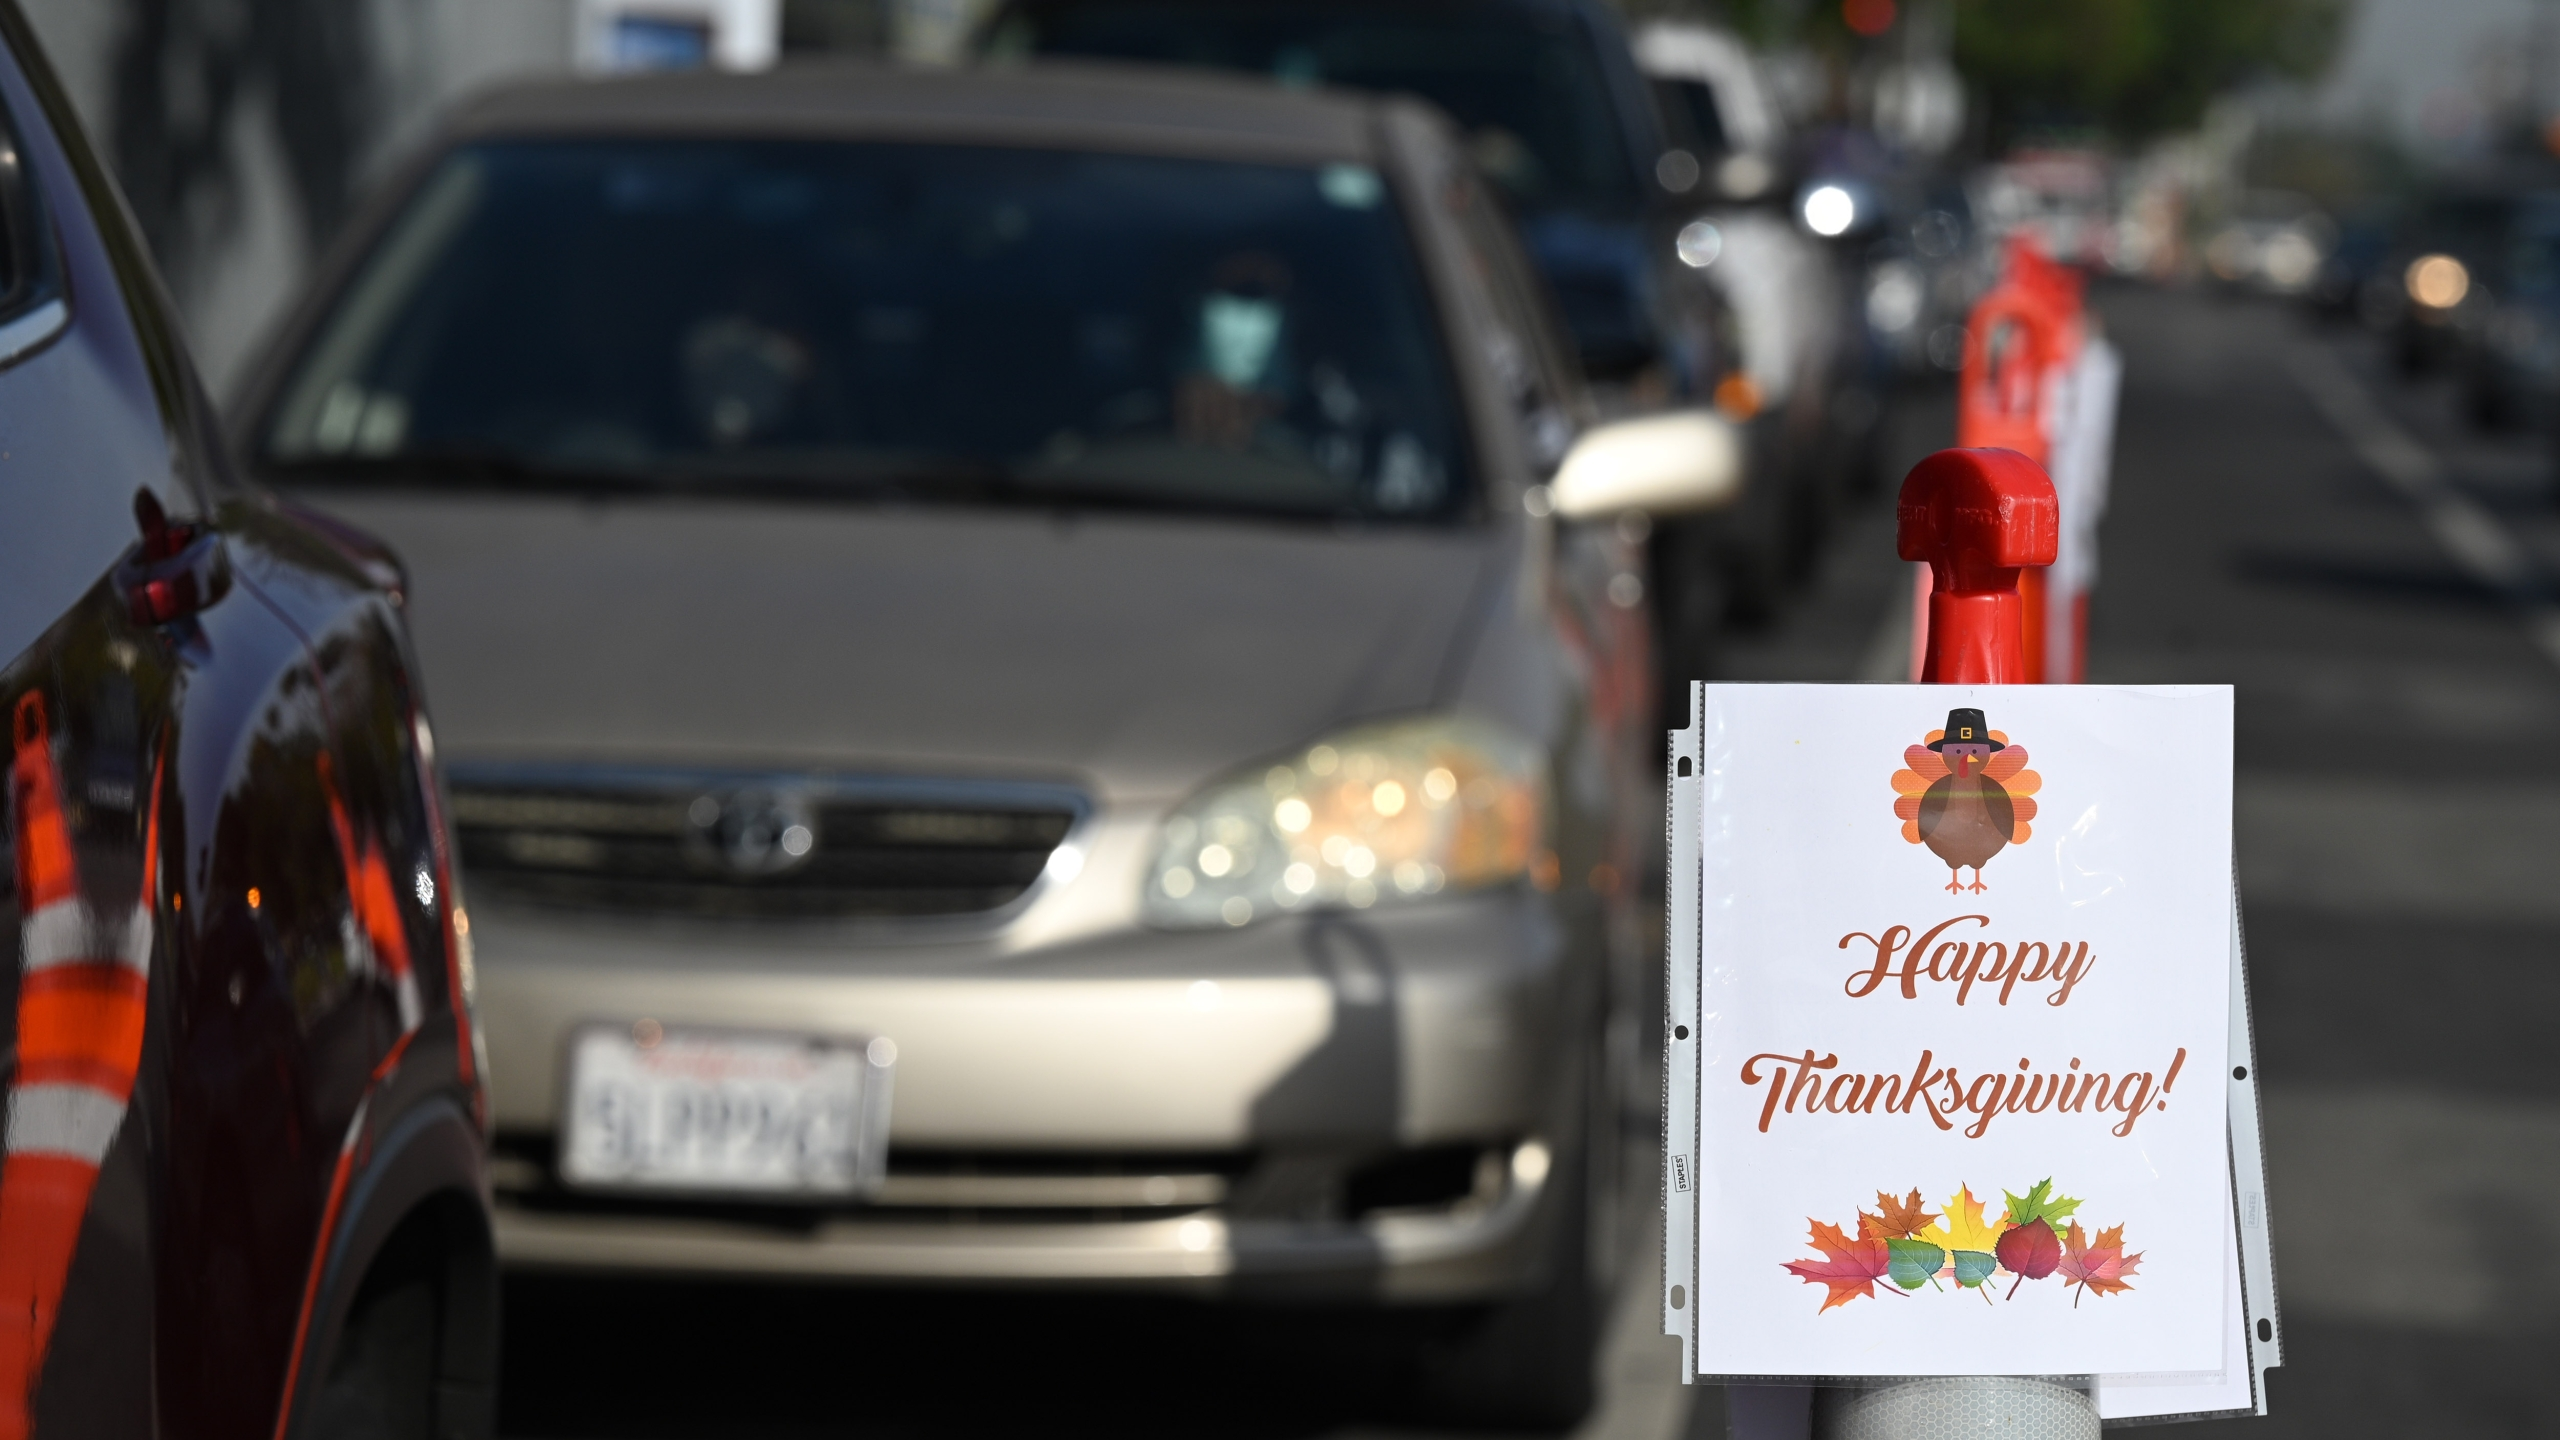 Local residents who have been financially impacted by the coronavirus COVID-19 pandemic wait in line in their cars for a Thanksgiving meal take home kit at a food distribution organized by the L.A. Mission, Nov. 20, 2020, outside Compton Avenue Elementary School in Los Angeles. (ROBYN BECK/AFP via Getty Images)